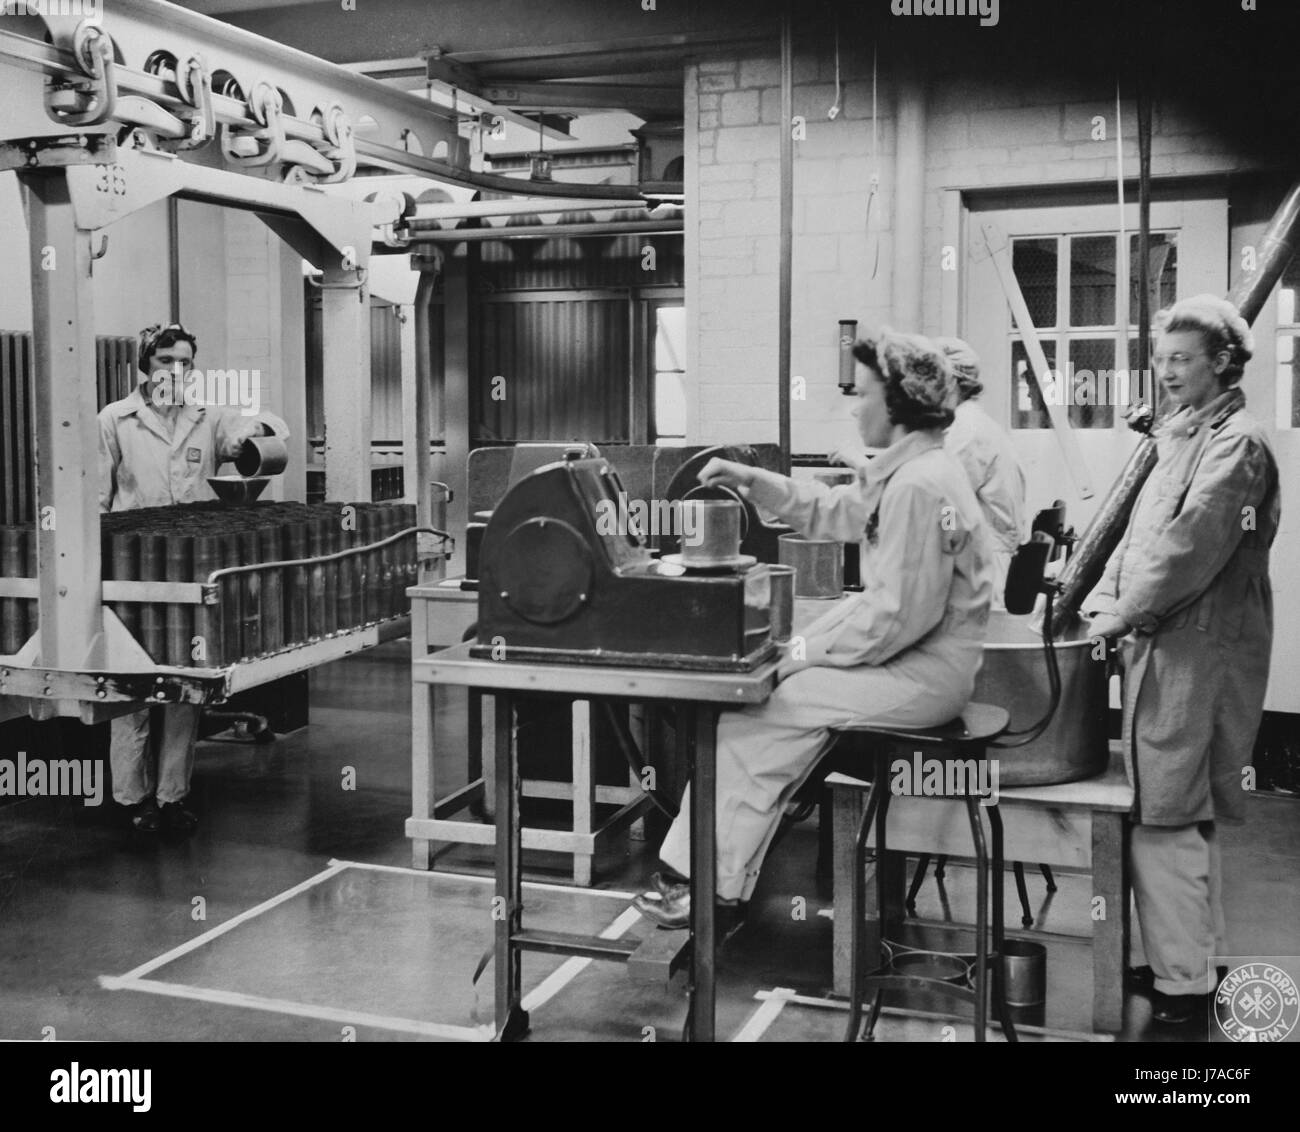 Women weighing the propelling charges of smokeless powder, 1943. - Stock Image